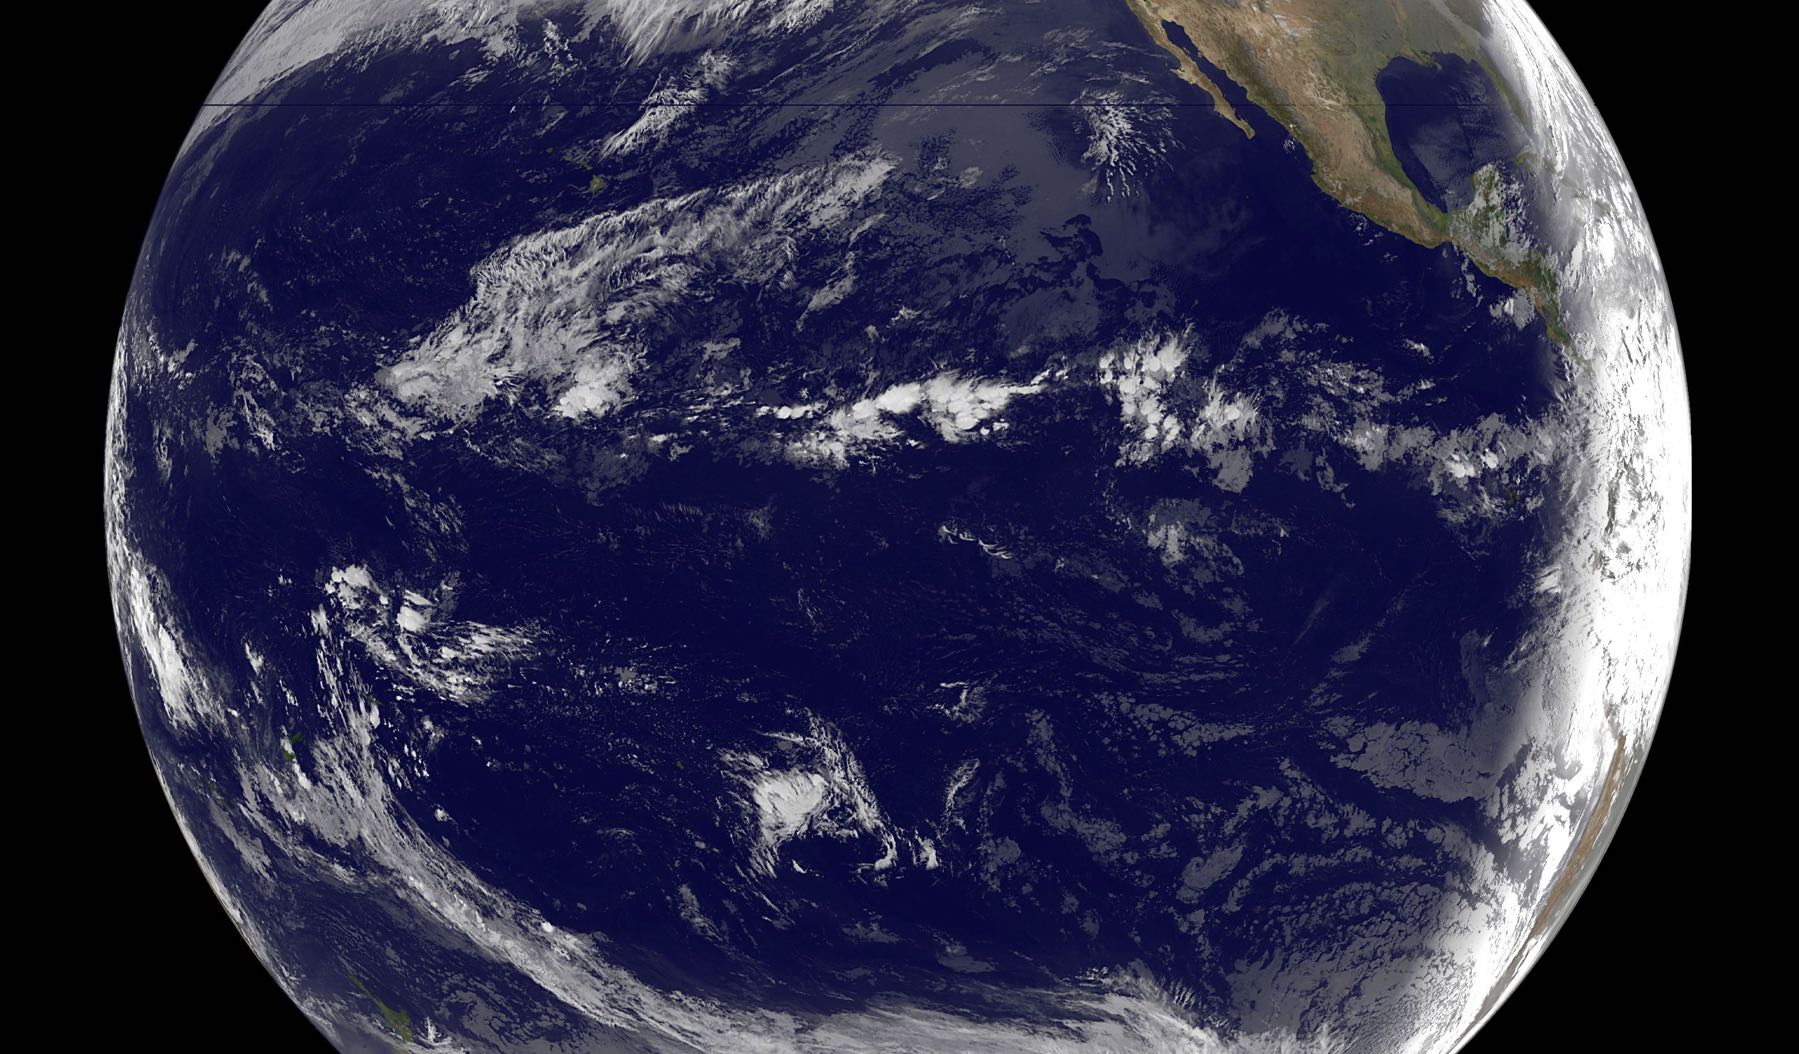 Pacific Ocean basin (Photo: NASA Goddard Space Flight/Flickr)